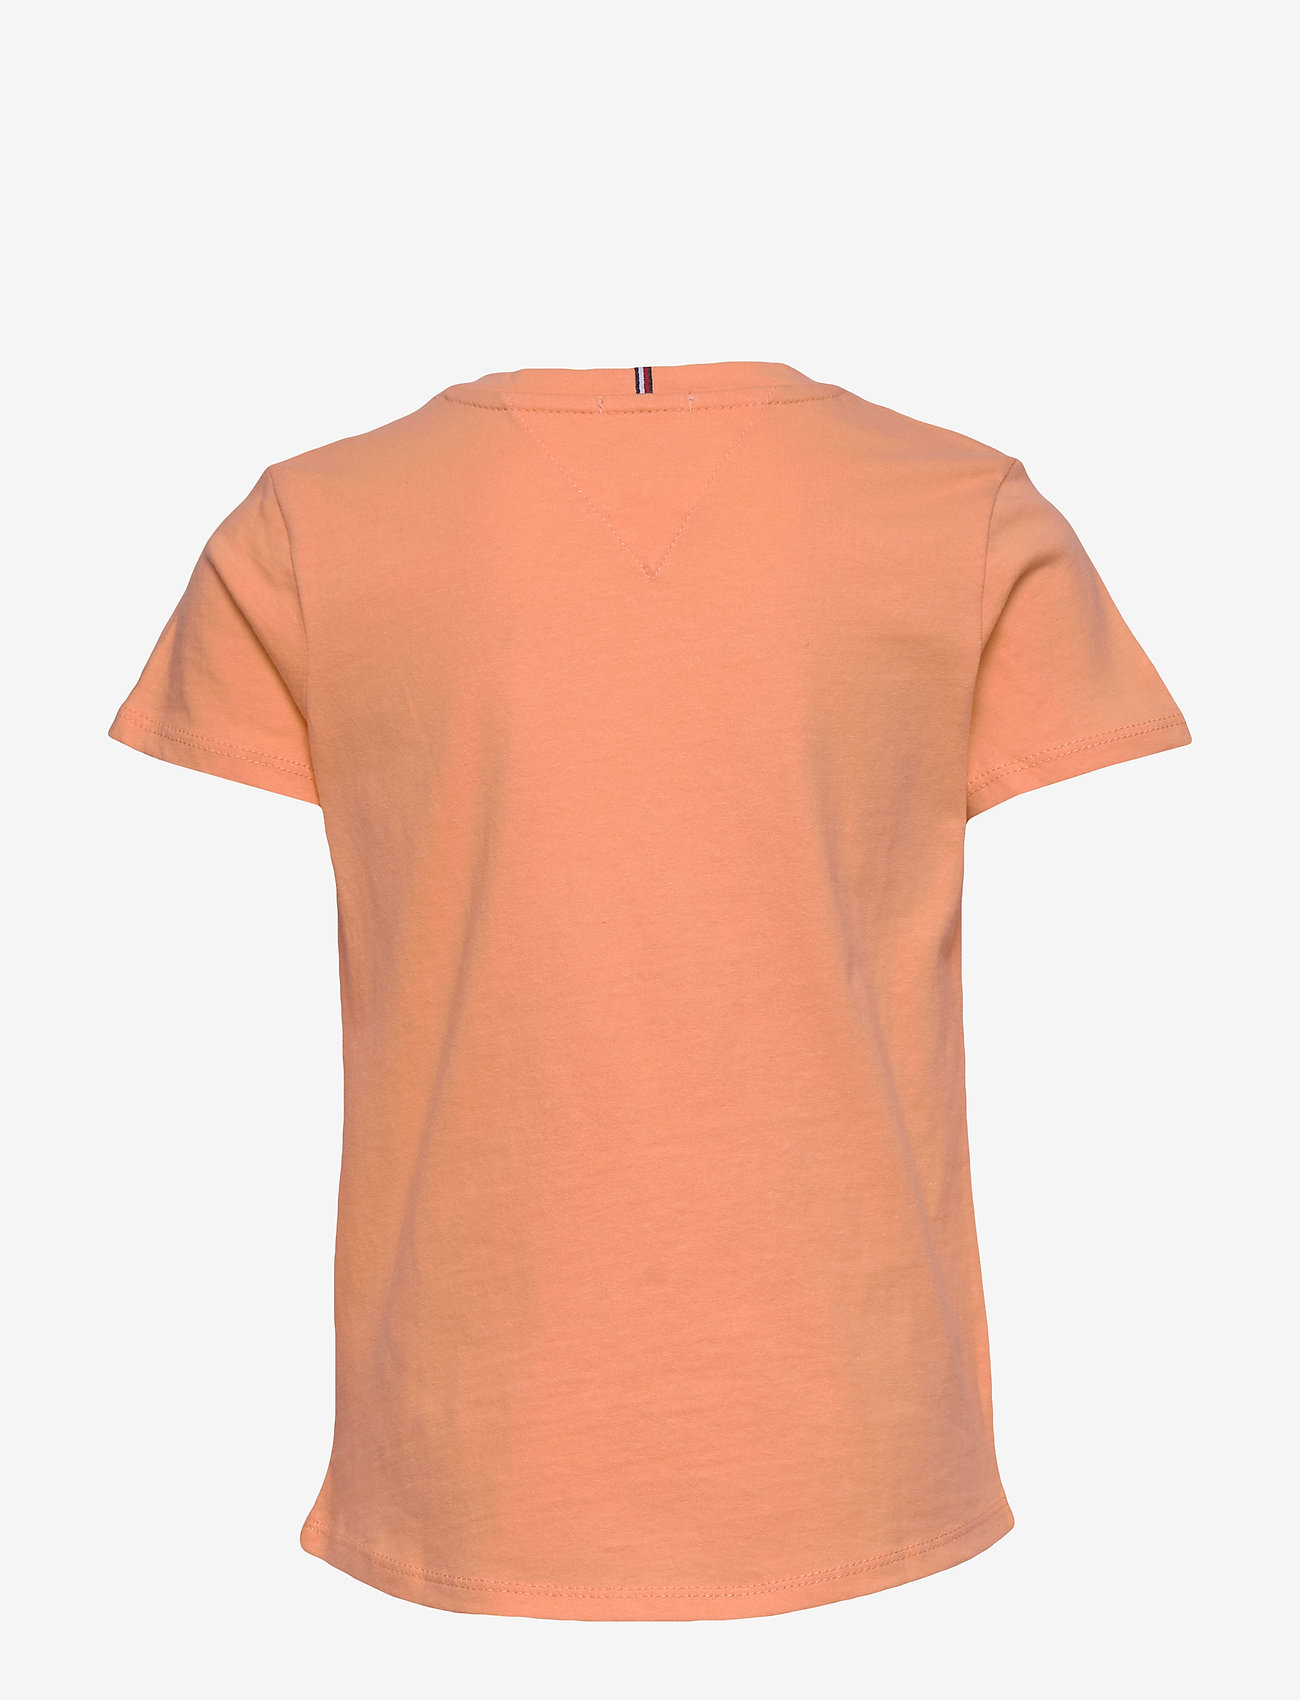 Tommy Hilfiger - ESSENTIAL  TEE S/S - short-sleeved - melon orange - 1